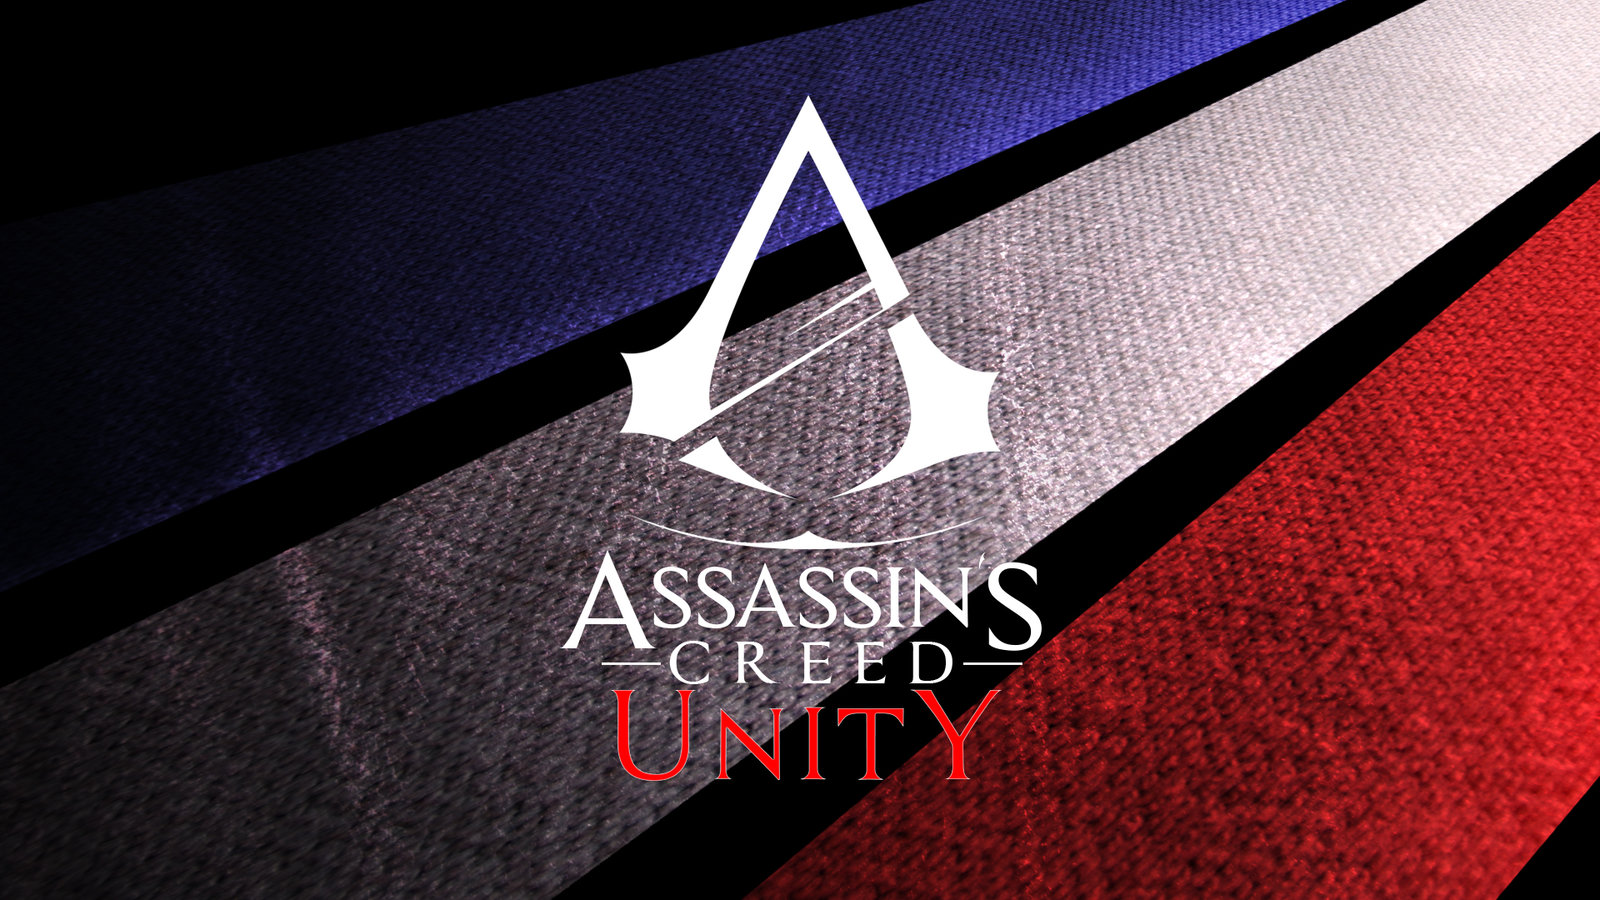 [100MB]Download Assassin's Creed Unity On Android - YouTube